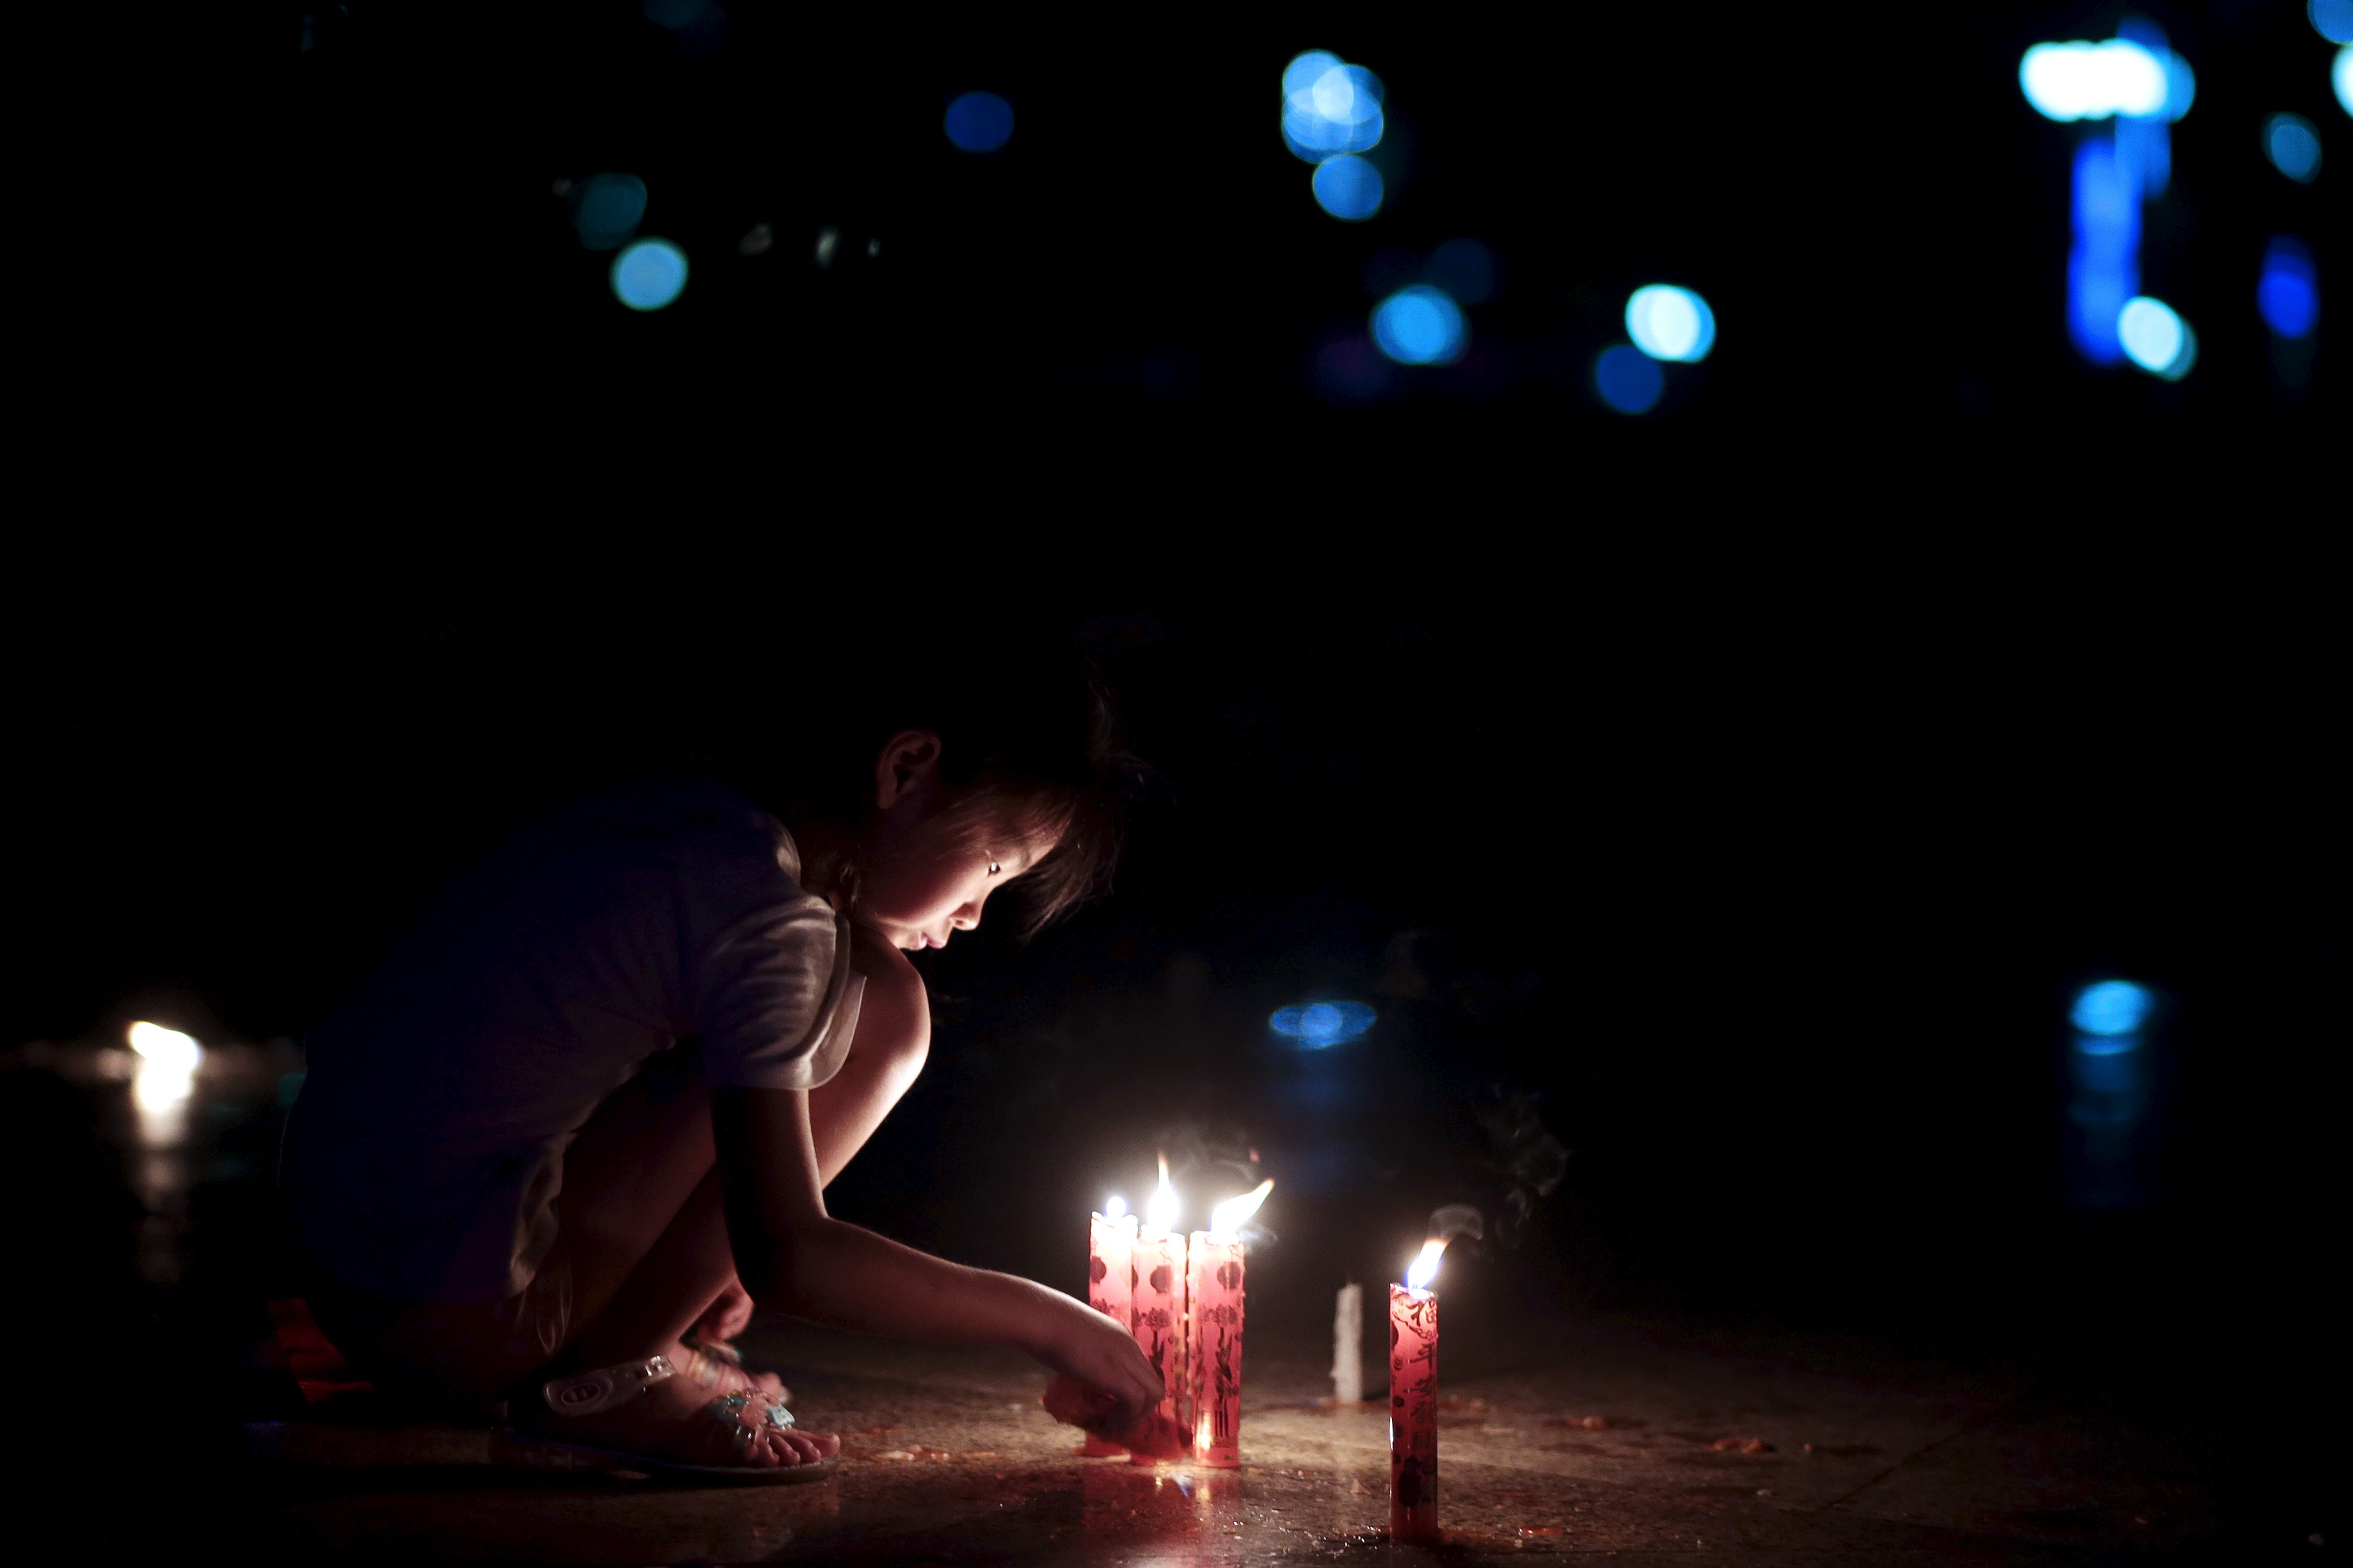 A girl lights a candle at a candlelight vigil to pay respect to the passengers of the sunken cruise ship Eastern Star on the Yangtze River, at a public square in Jianli, Hubei province, China, June 5, 2015. Aly Song/Reuters